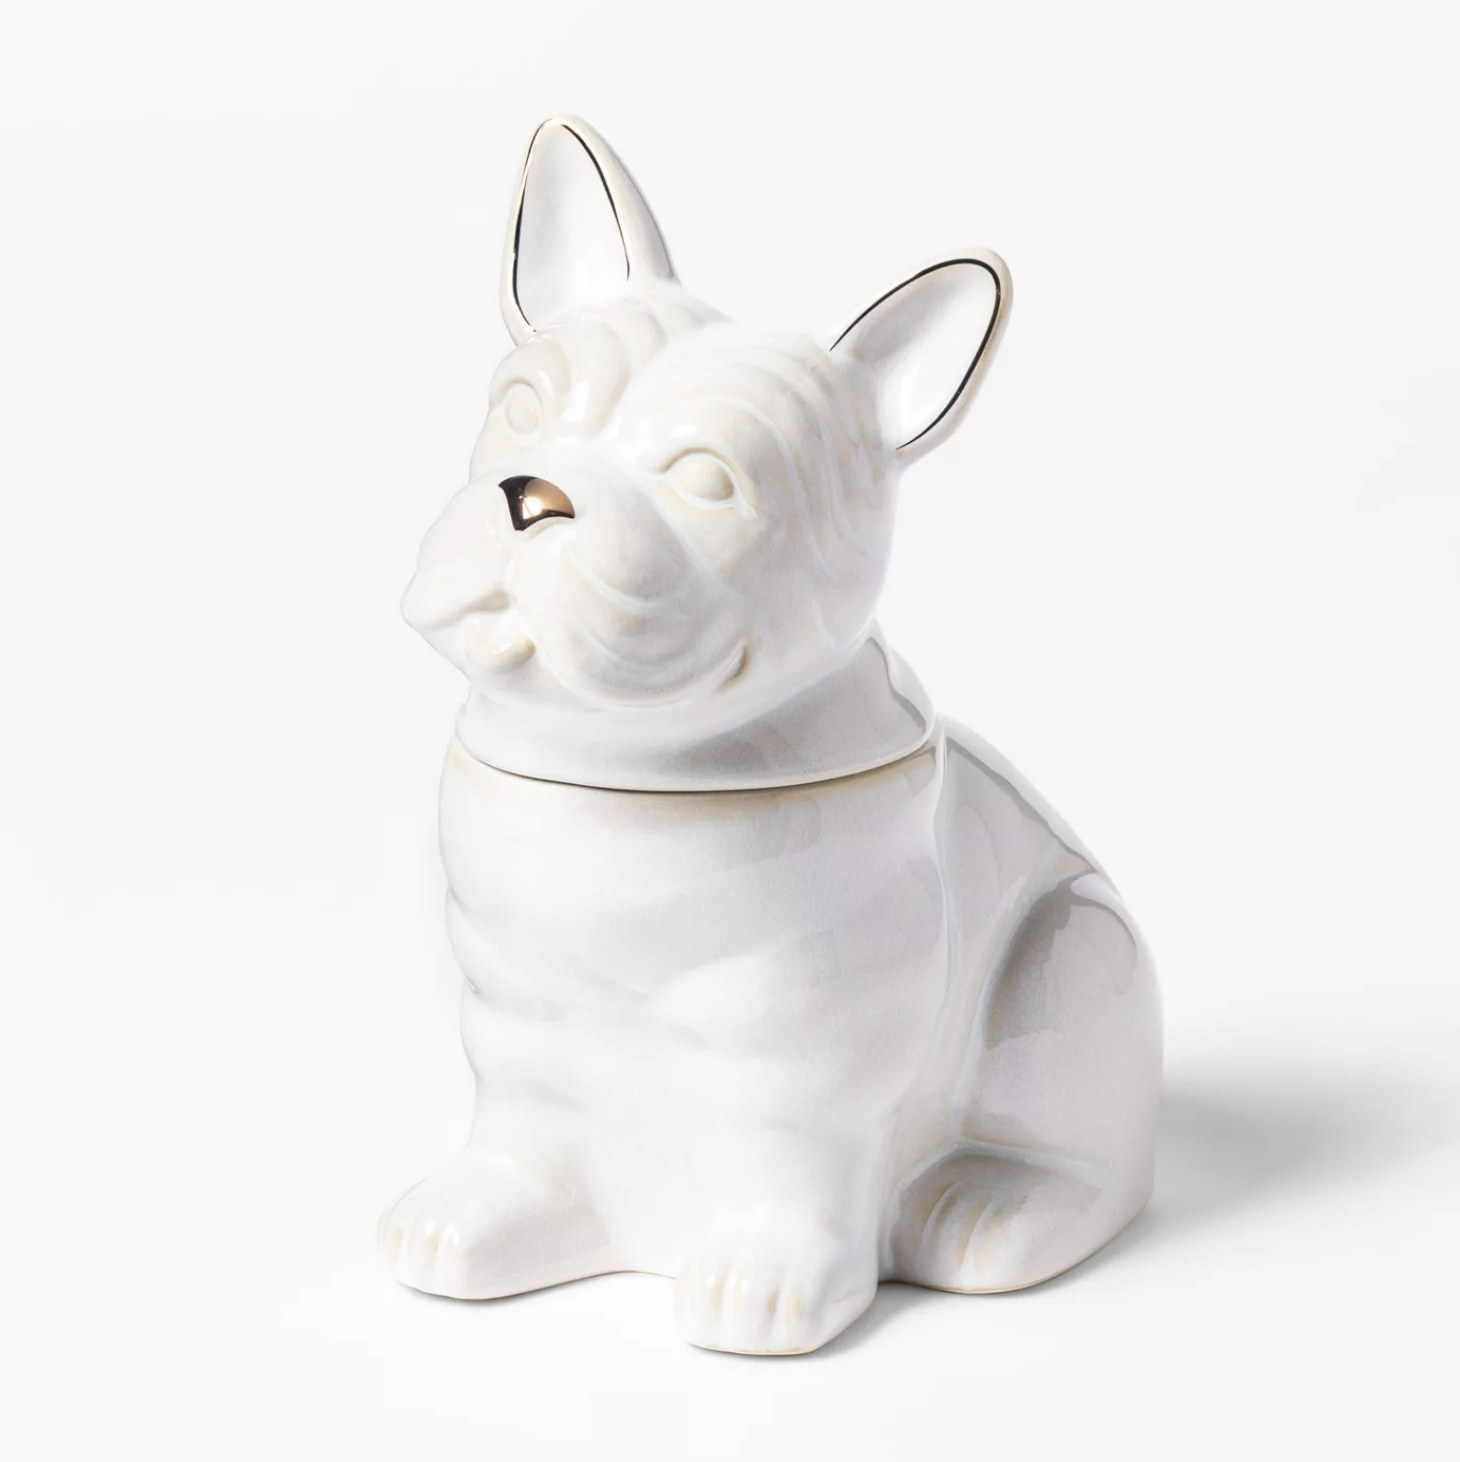 A white ceramic bulldog-shaped cookie jar with gold accents